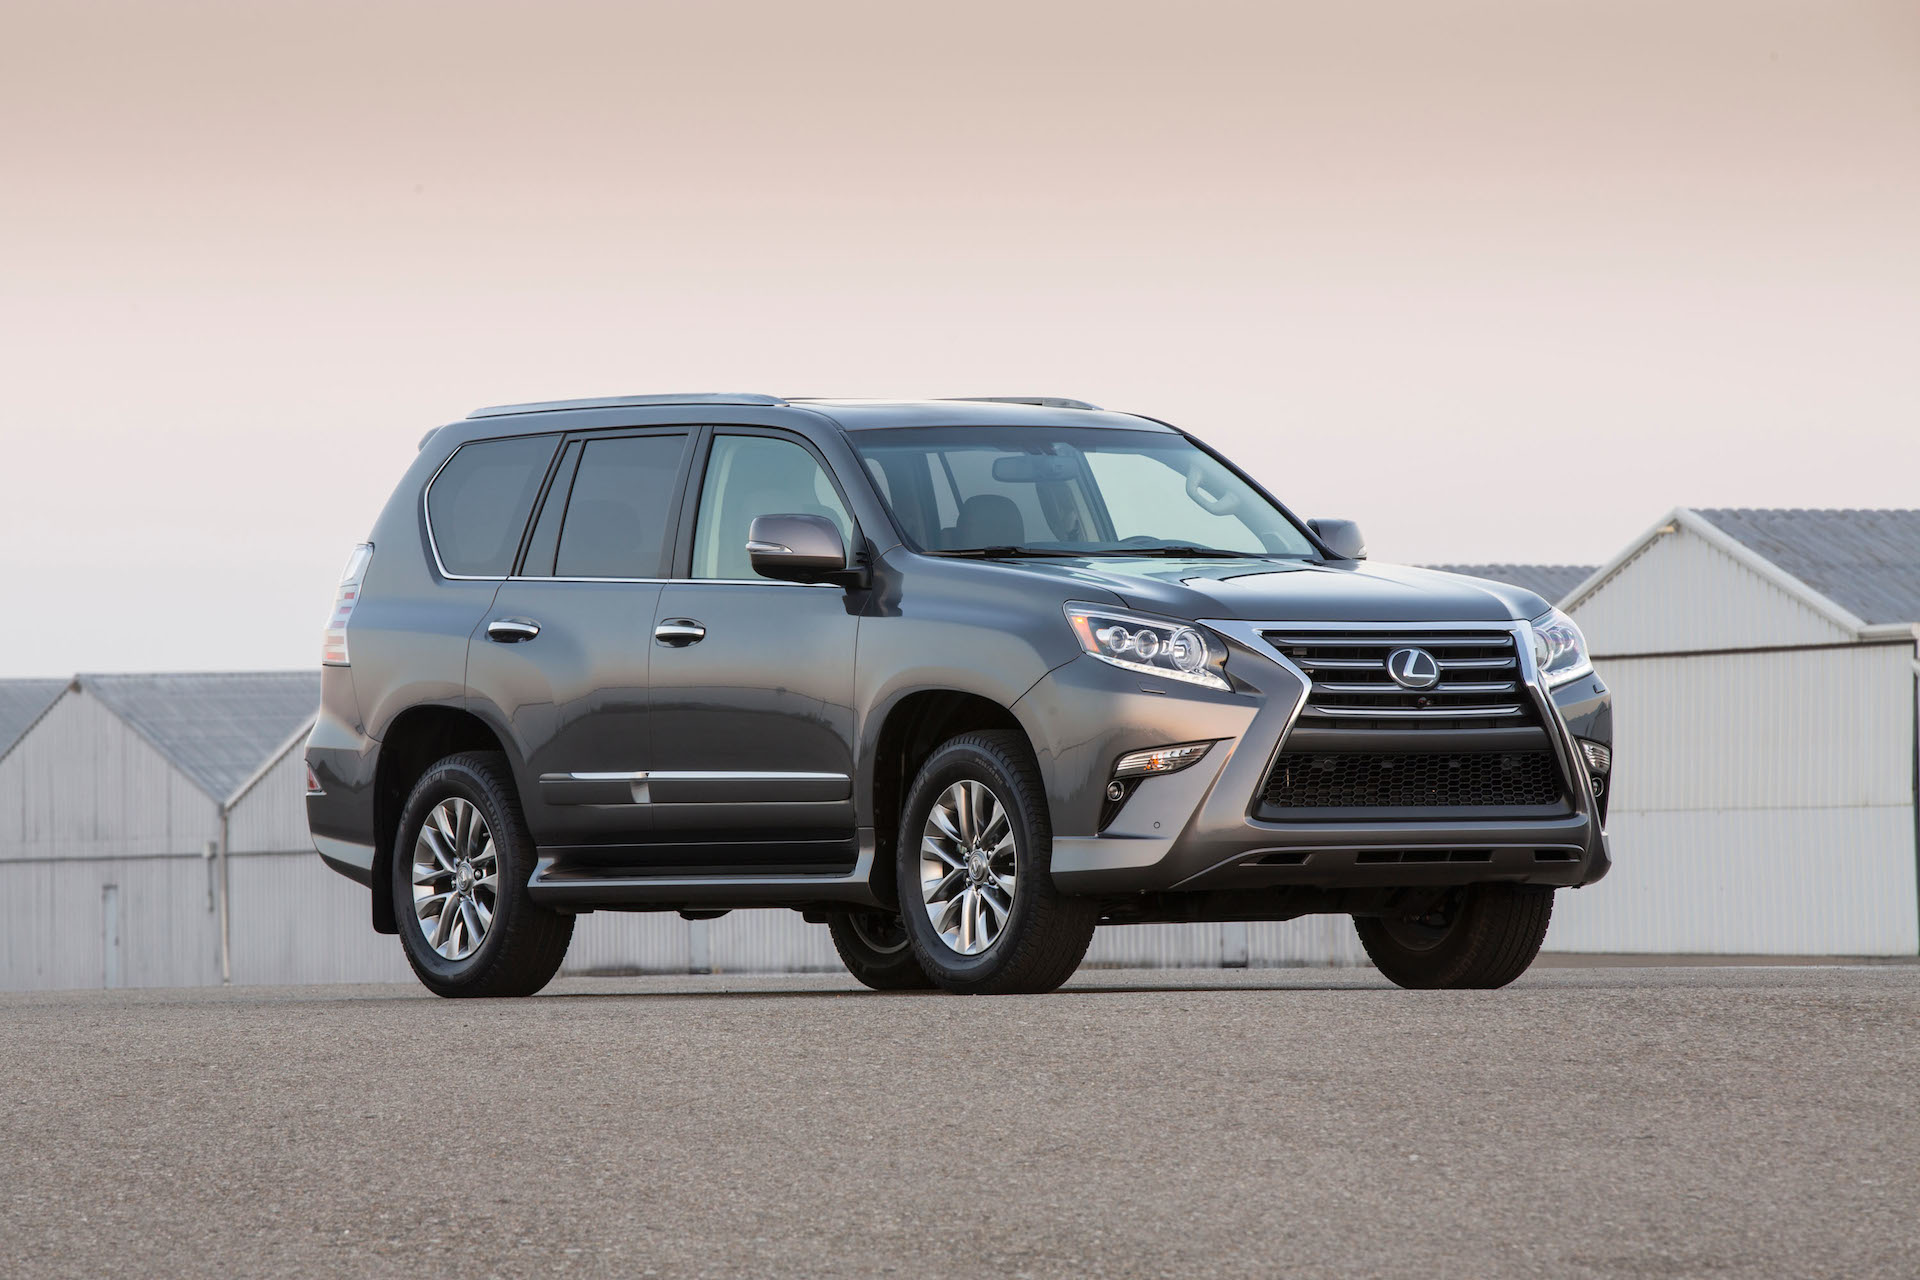 2015 lexus gx 460 review ratings specs prices and photos the car connection. Black Bedroom Furniture Sets. Home Design Ideas